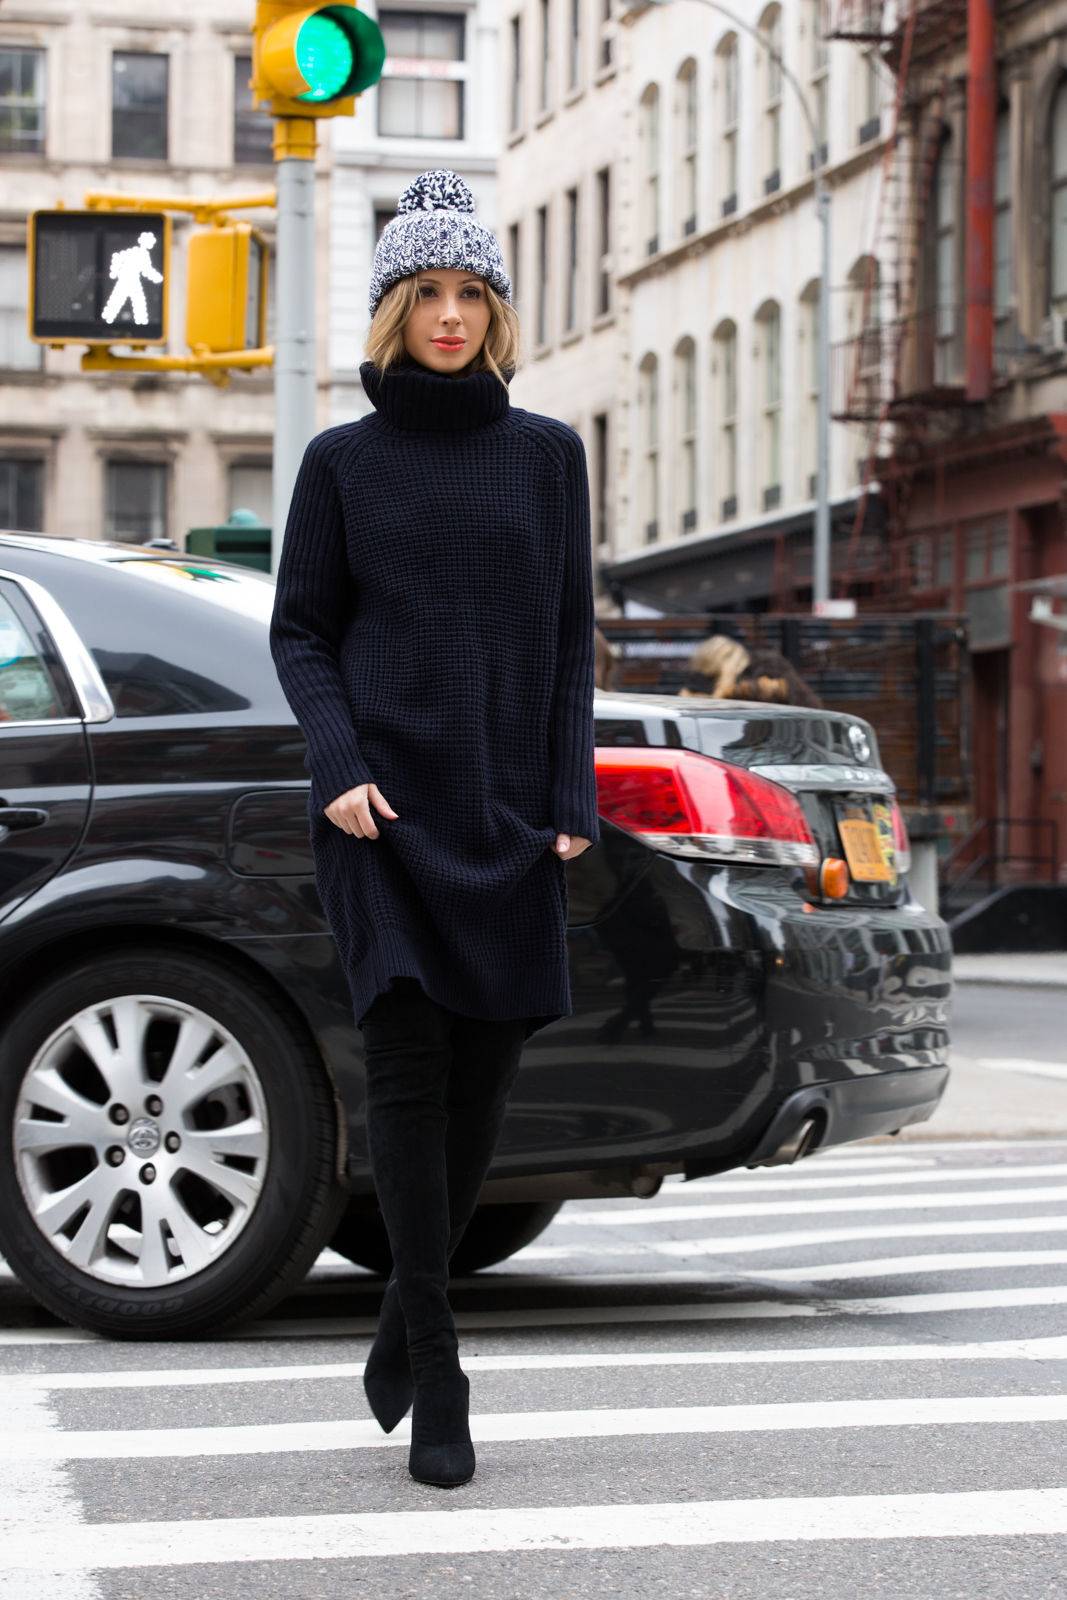 NEW YORK STREET STYLE ON FRIEND IN FASHION